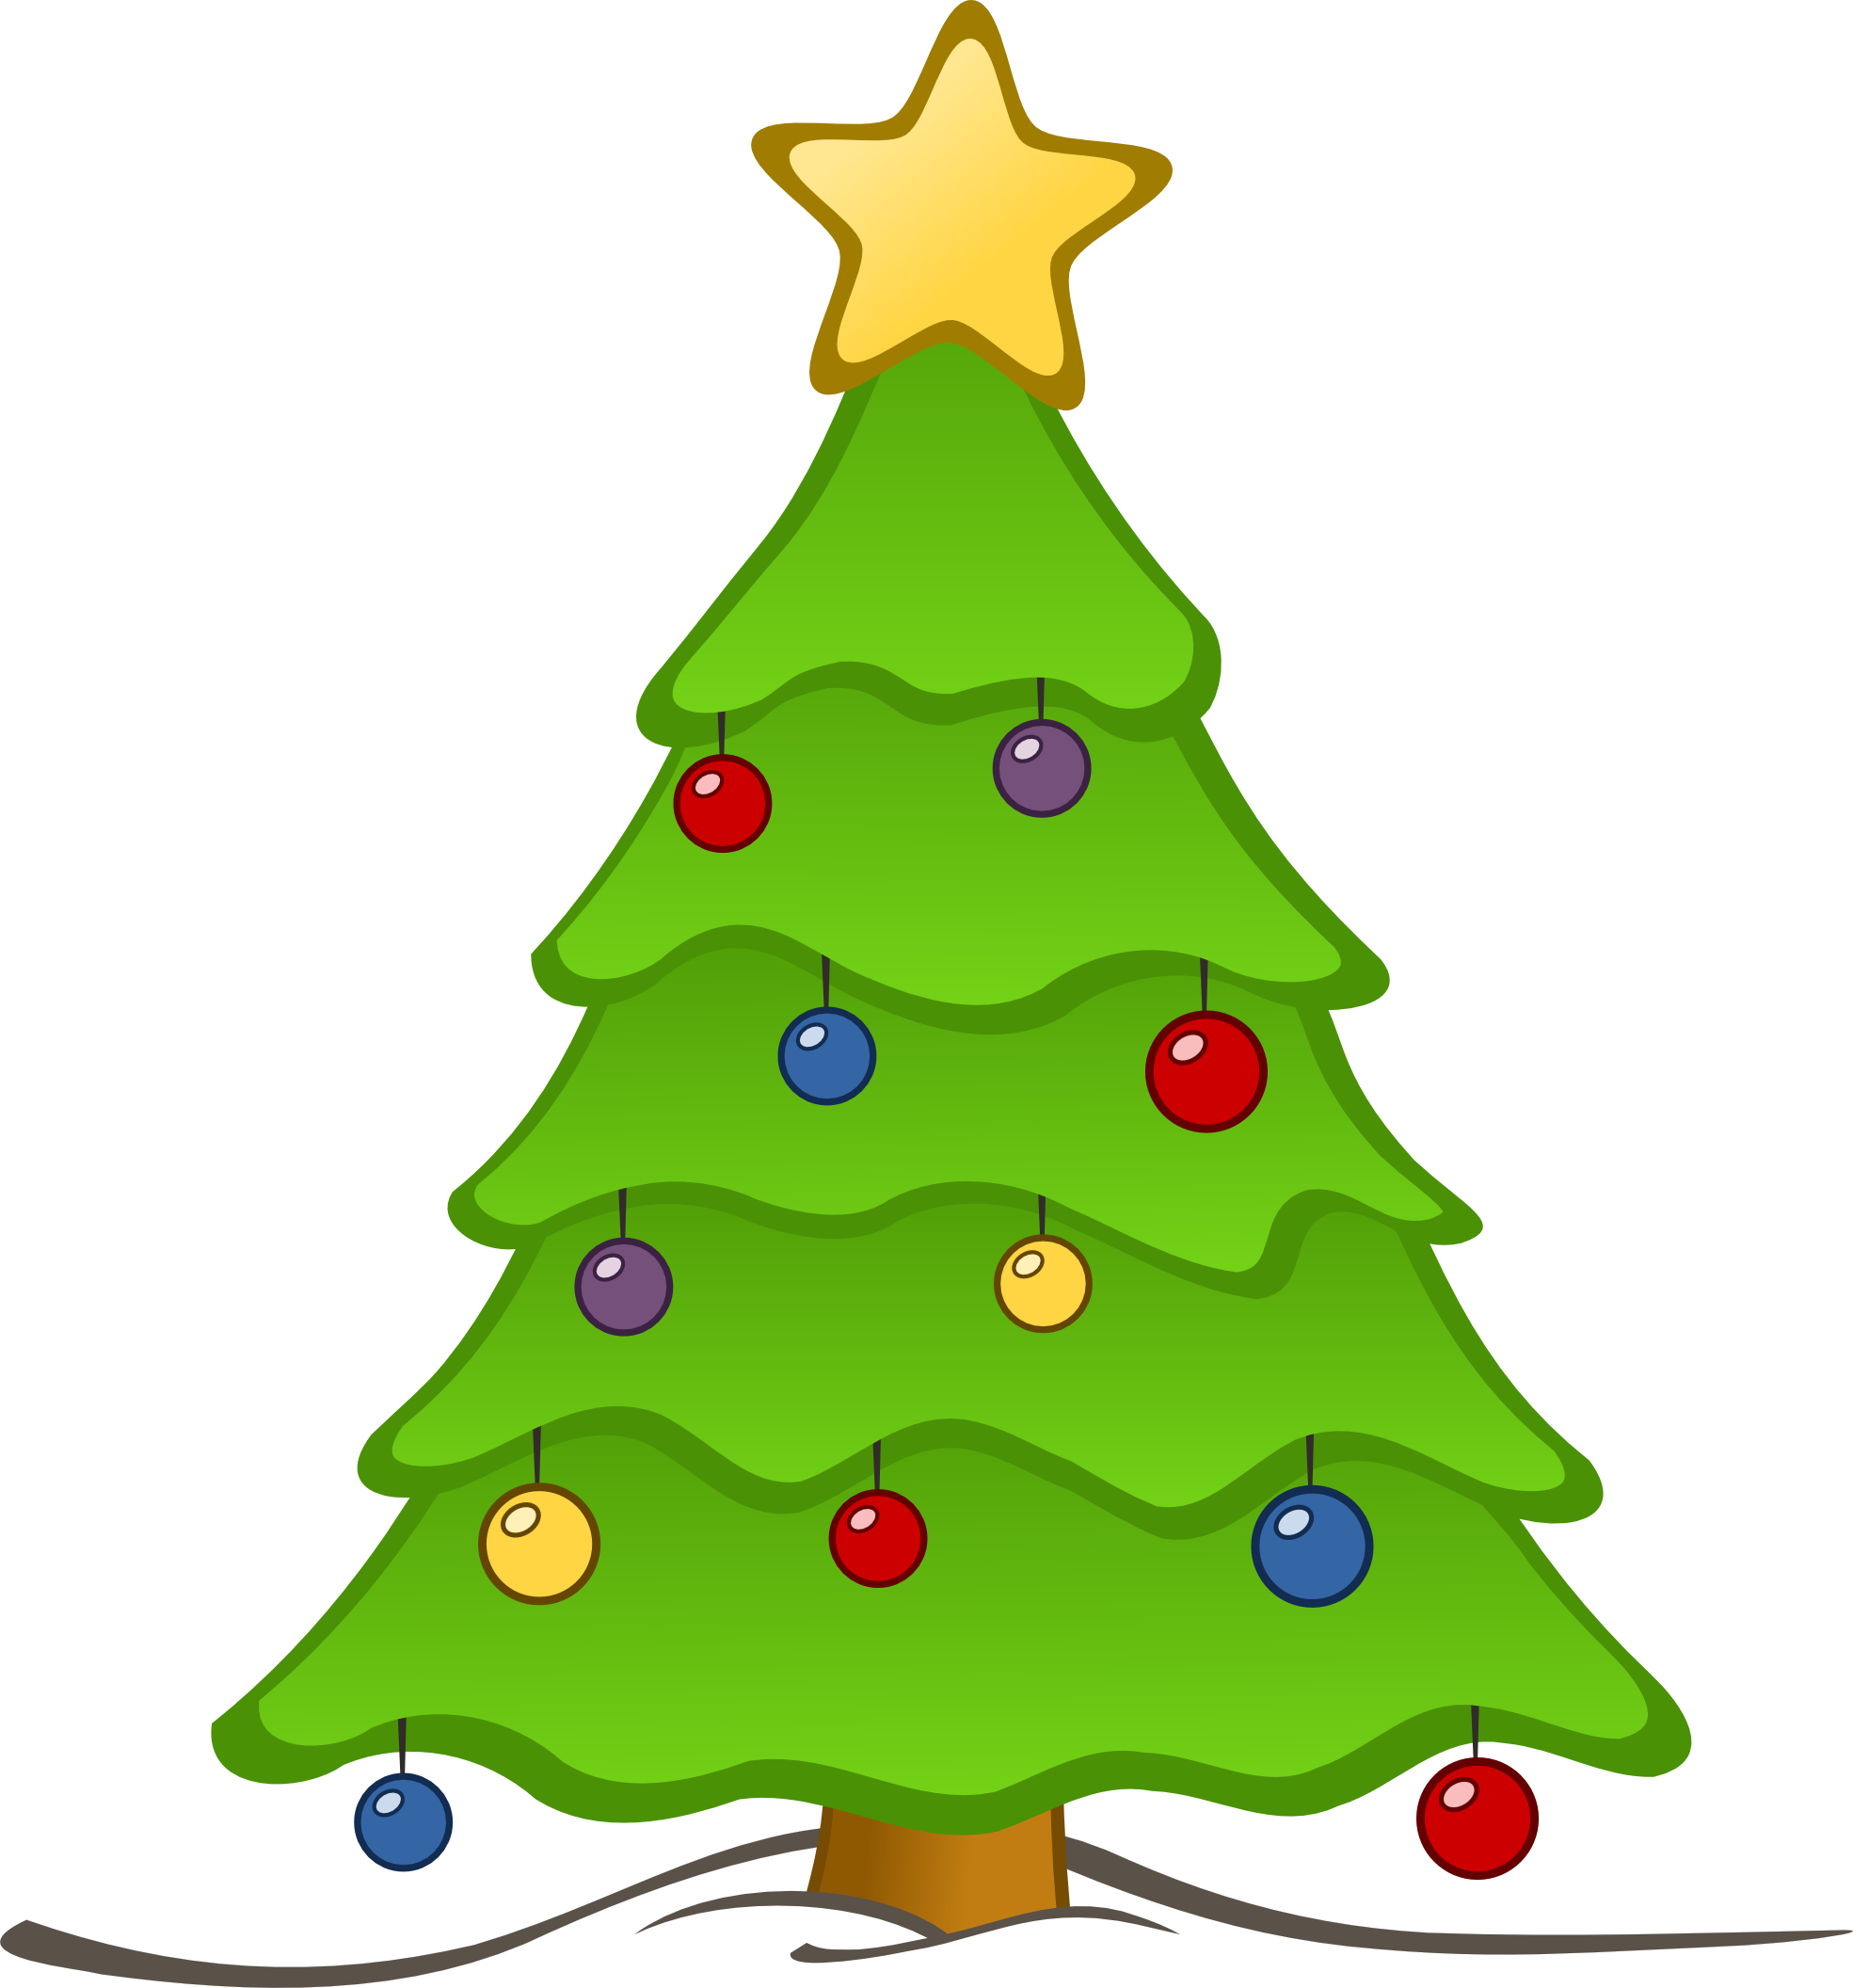 Christmas tree graphics clipart vector freeuse Christmas Tree Clipart | Clipart Panda - Free Clipart Images vector freeuse